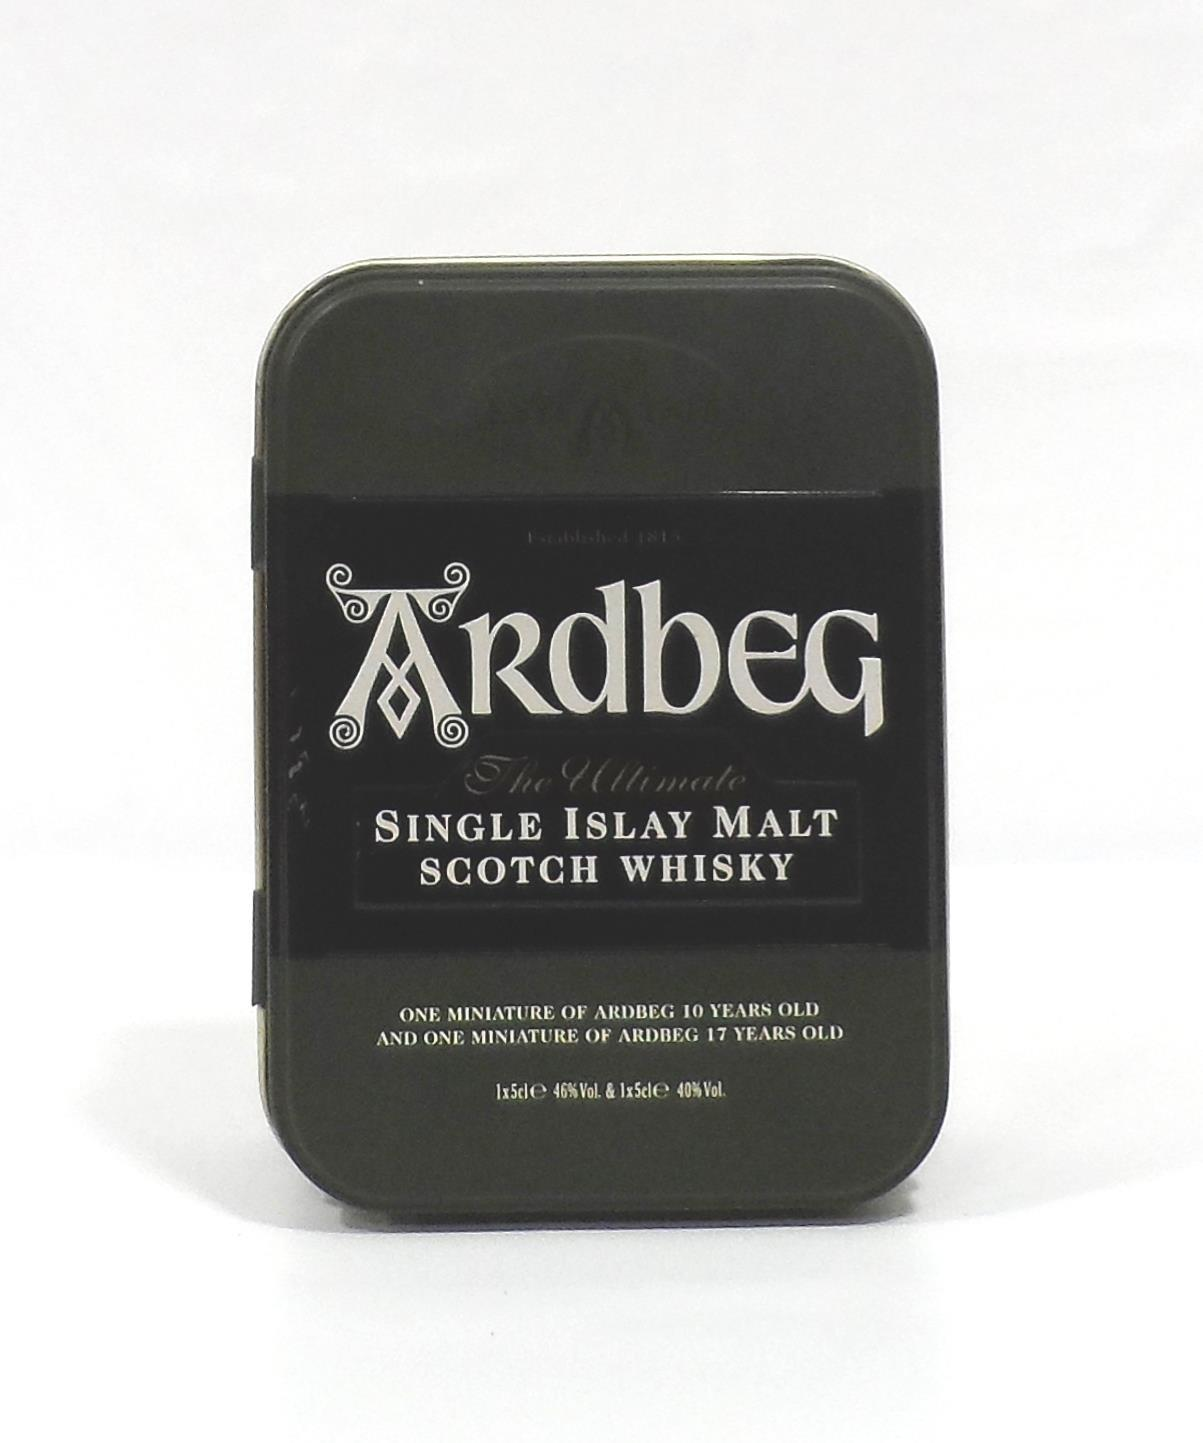 Lot 26 - ARDBEG MINIATURE TIN A great wee tin with two miniatures: one Ardbeg 17 Year Old Single Malt